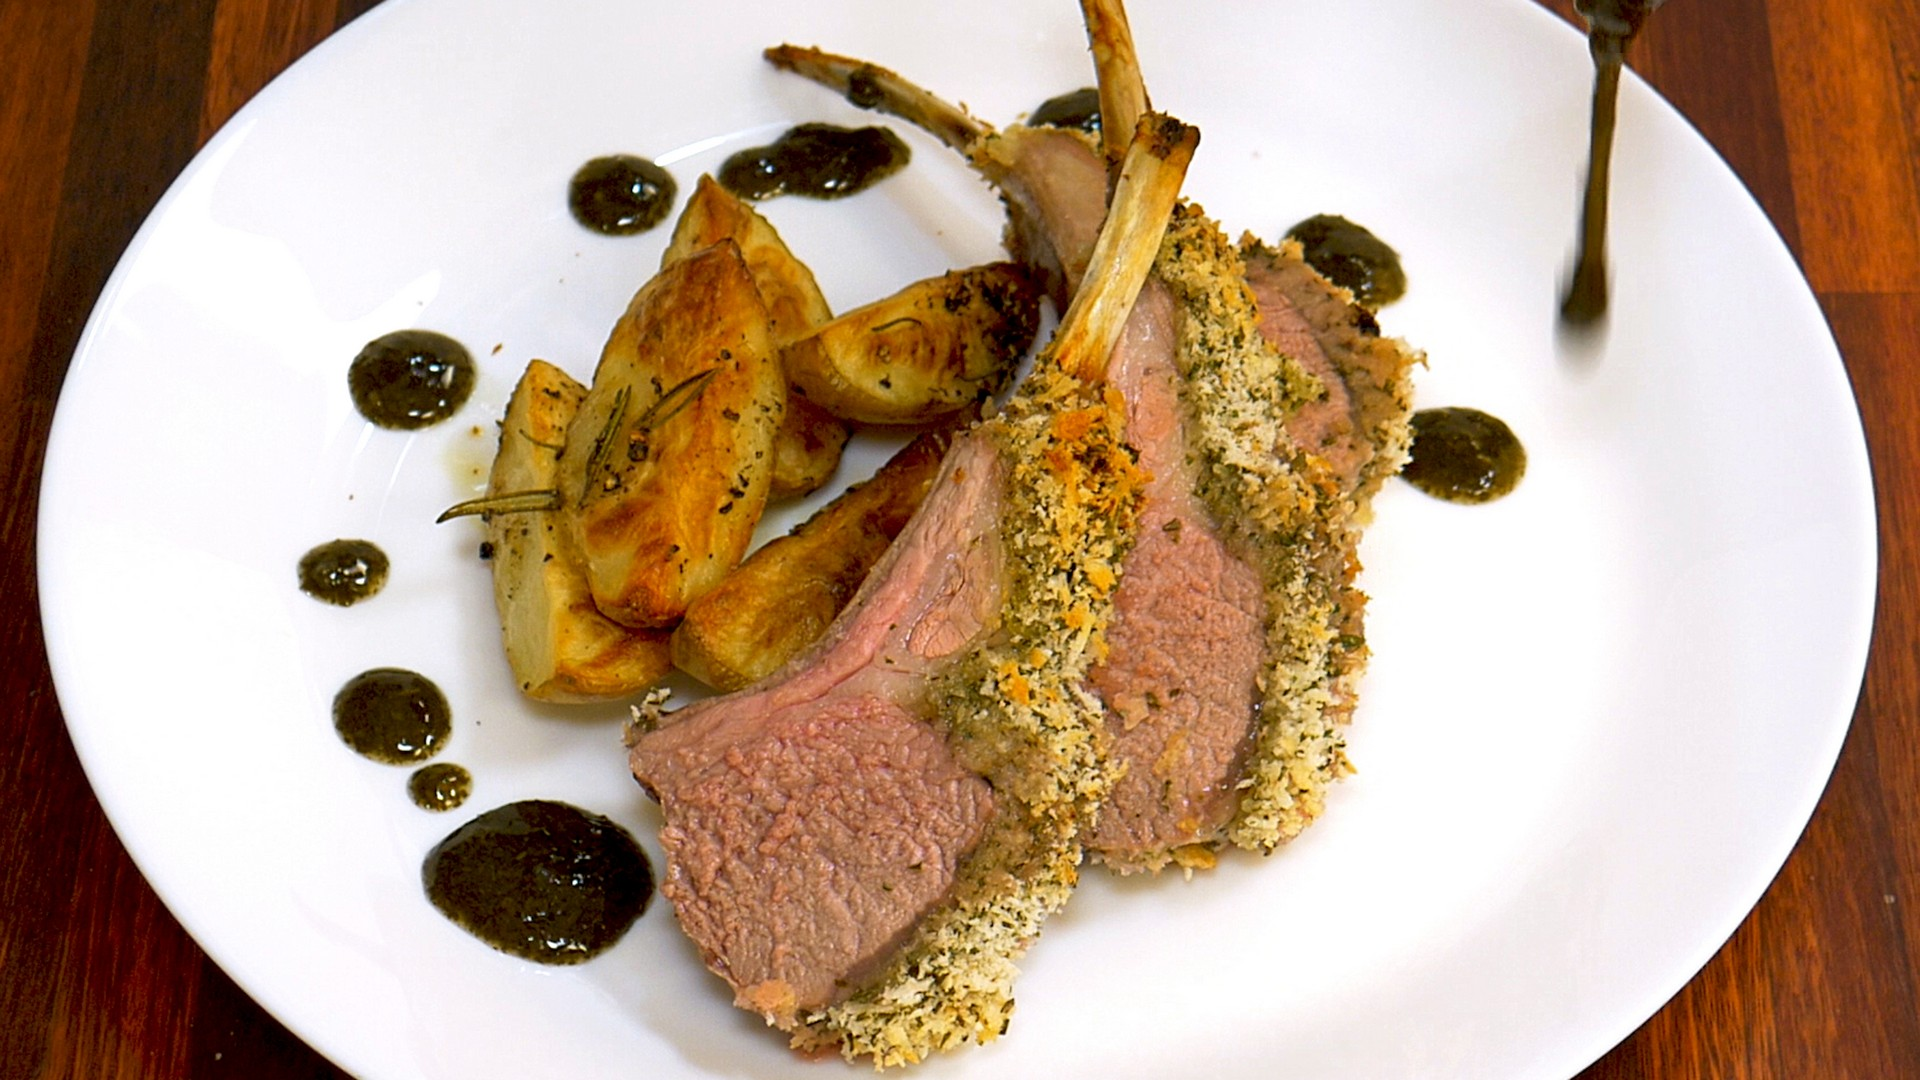 S1E4 Crusted Rack of Lamb Pic 6